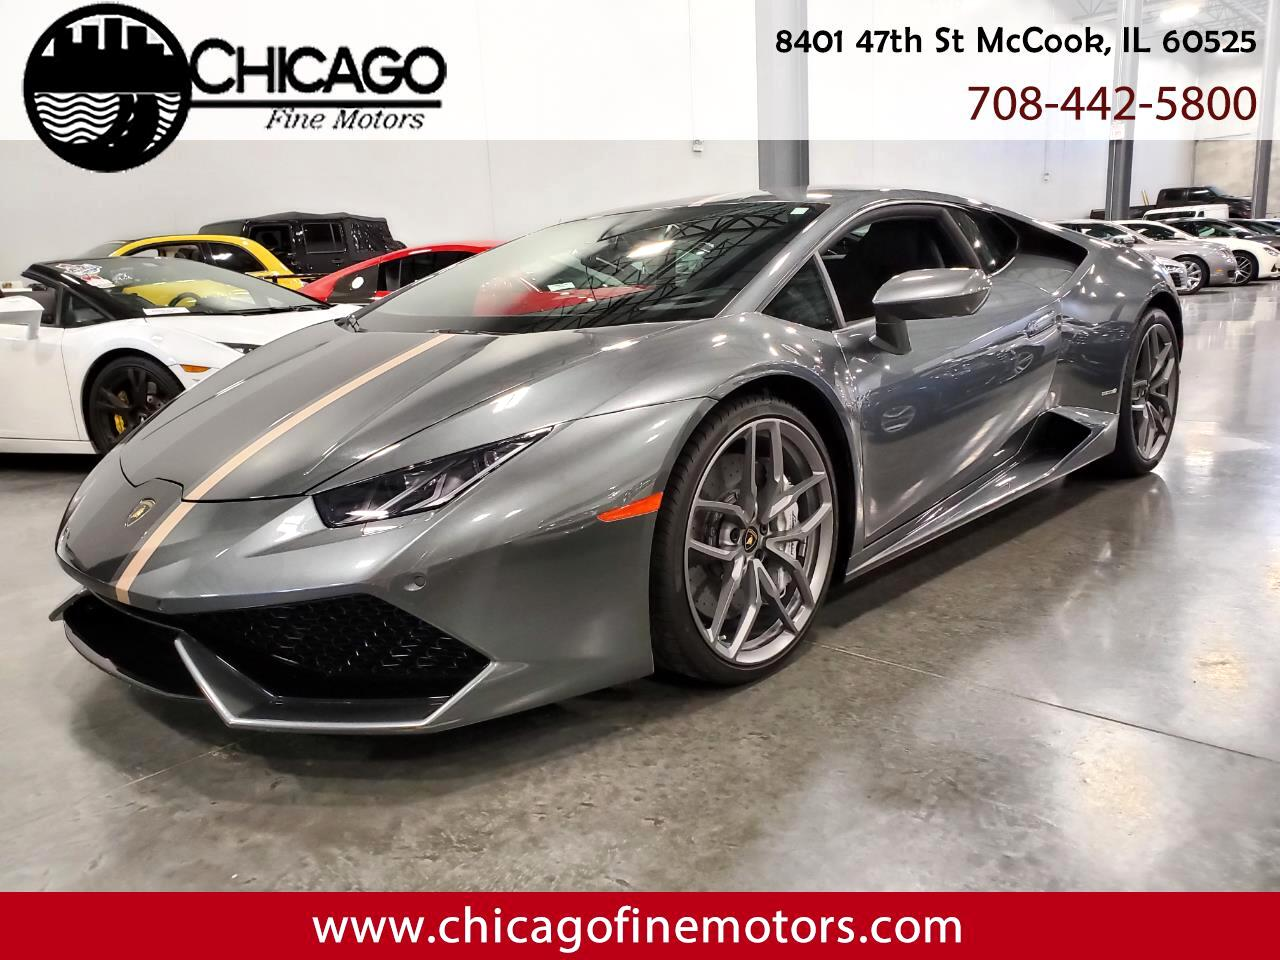 Used Cars For Sale In Chicago >> Used Cars For Sale Mccook Il 60525 Chicago Fine Motors